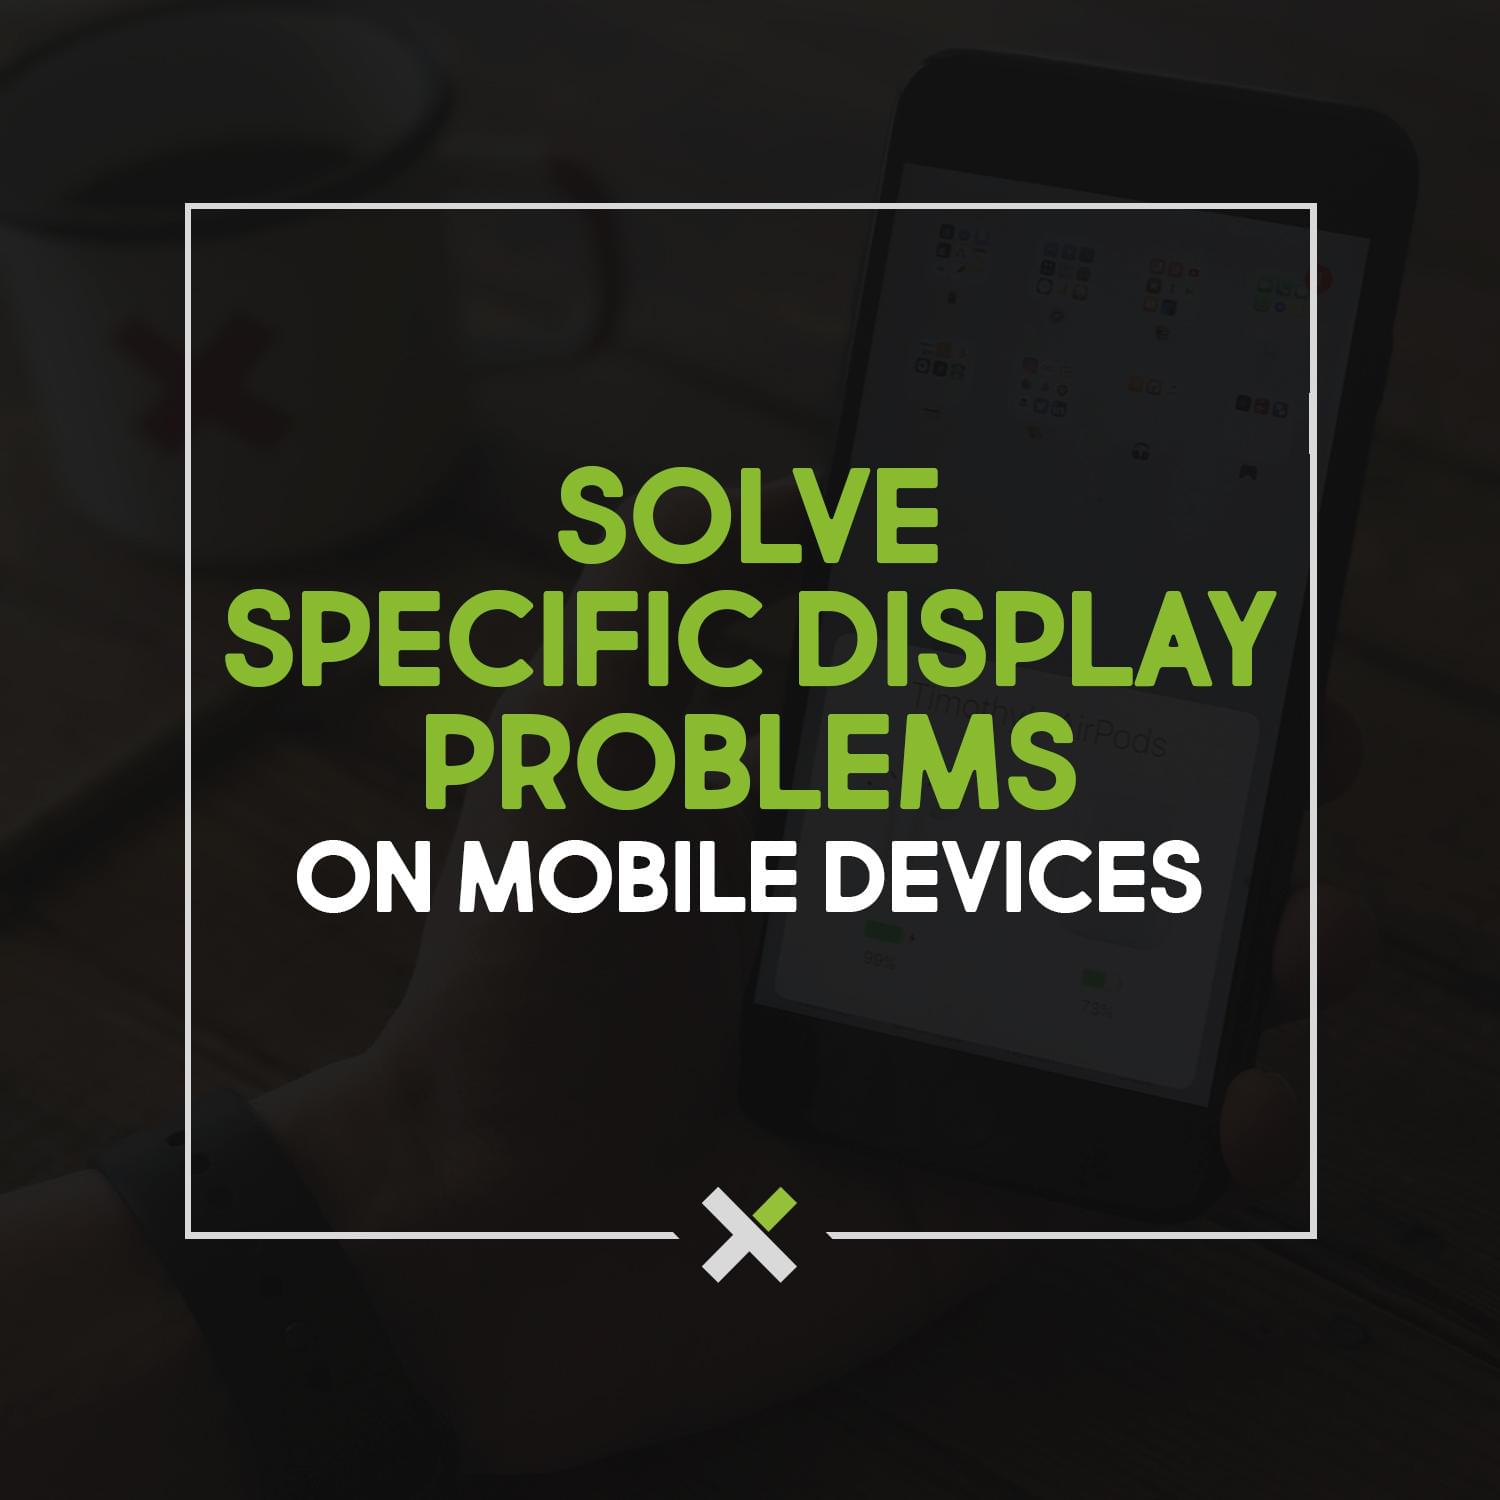 Fix Specific Wordpress Issues On Mobile Devices by touringxx - 114830